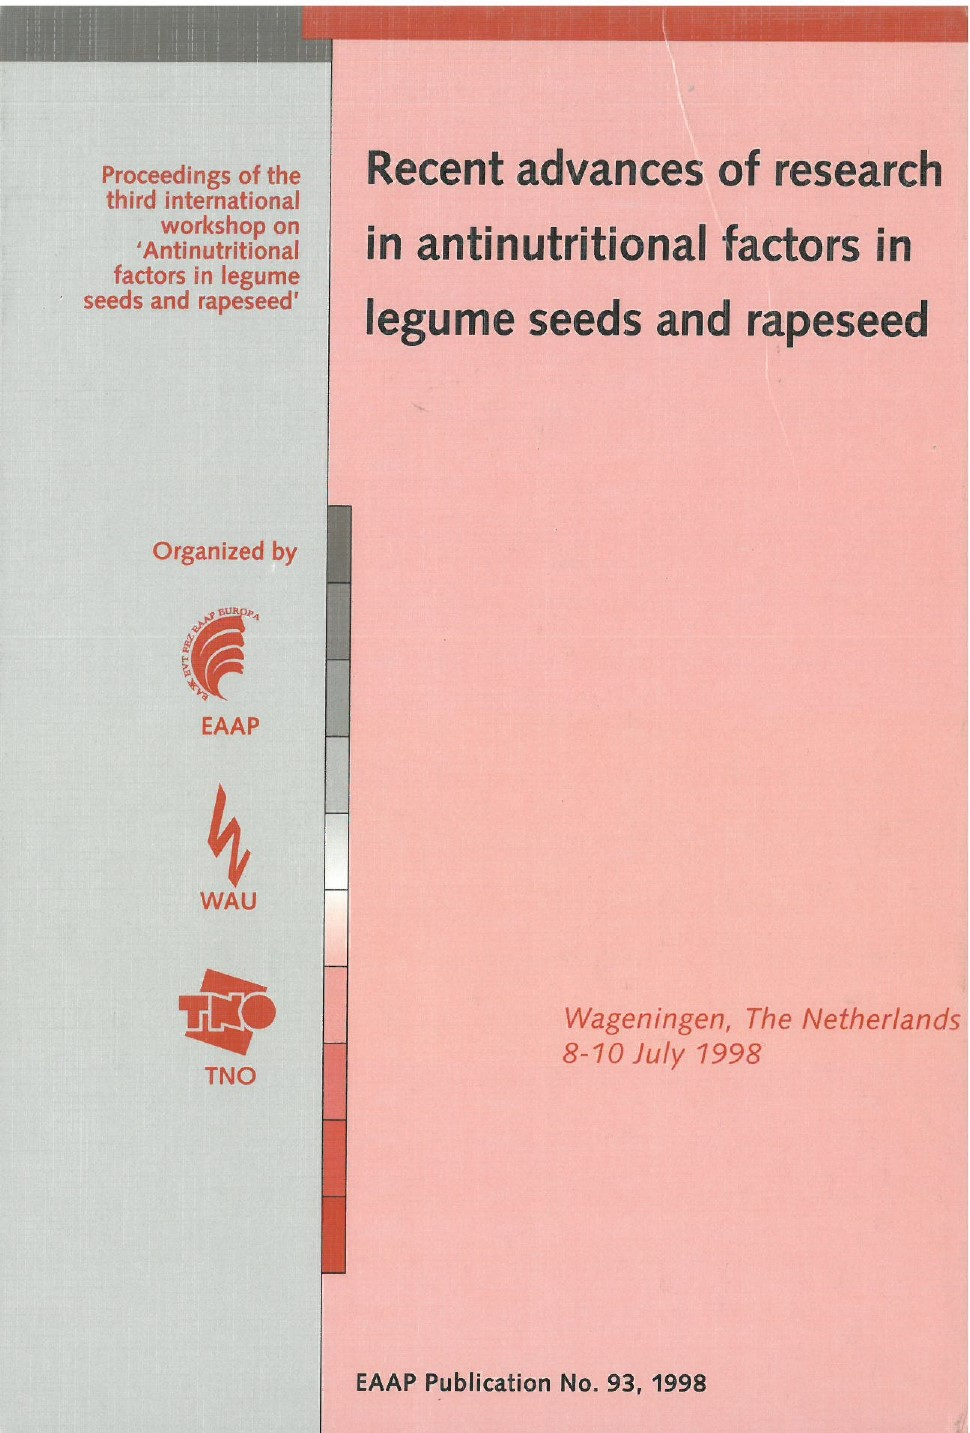 Recent advances of research in antinutritional factors in legume seeds and rapeseed